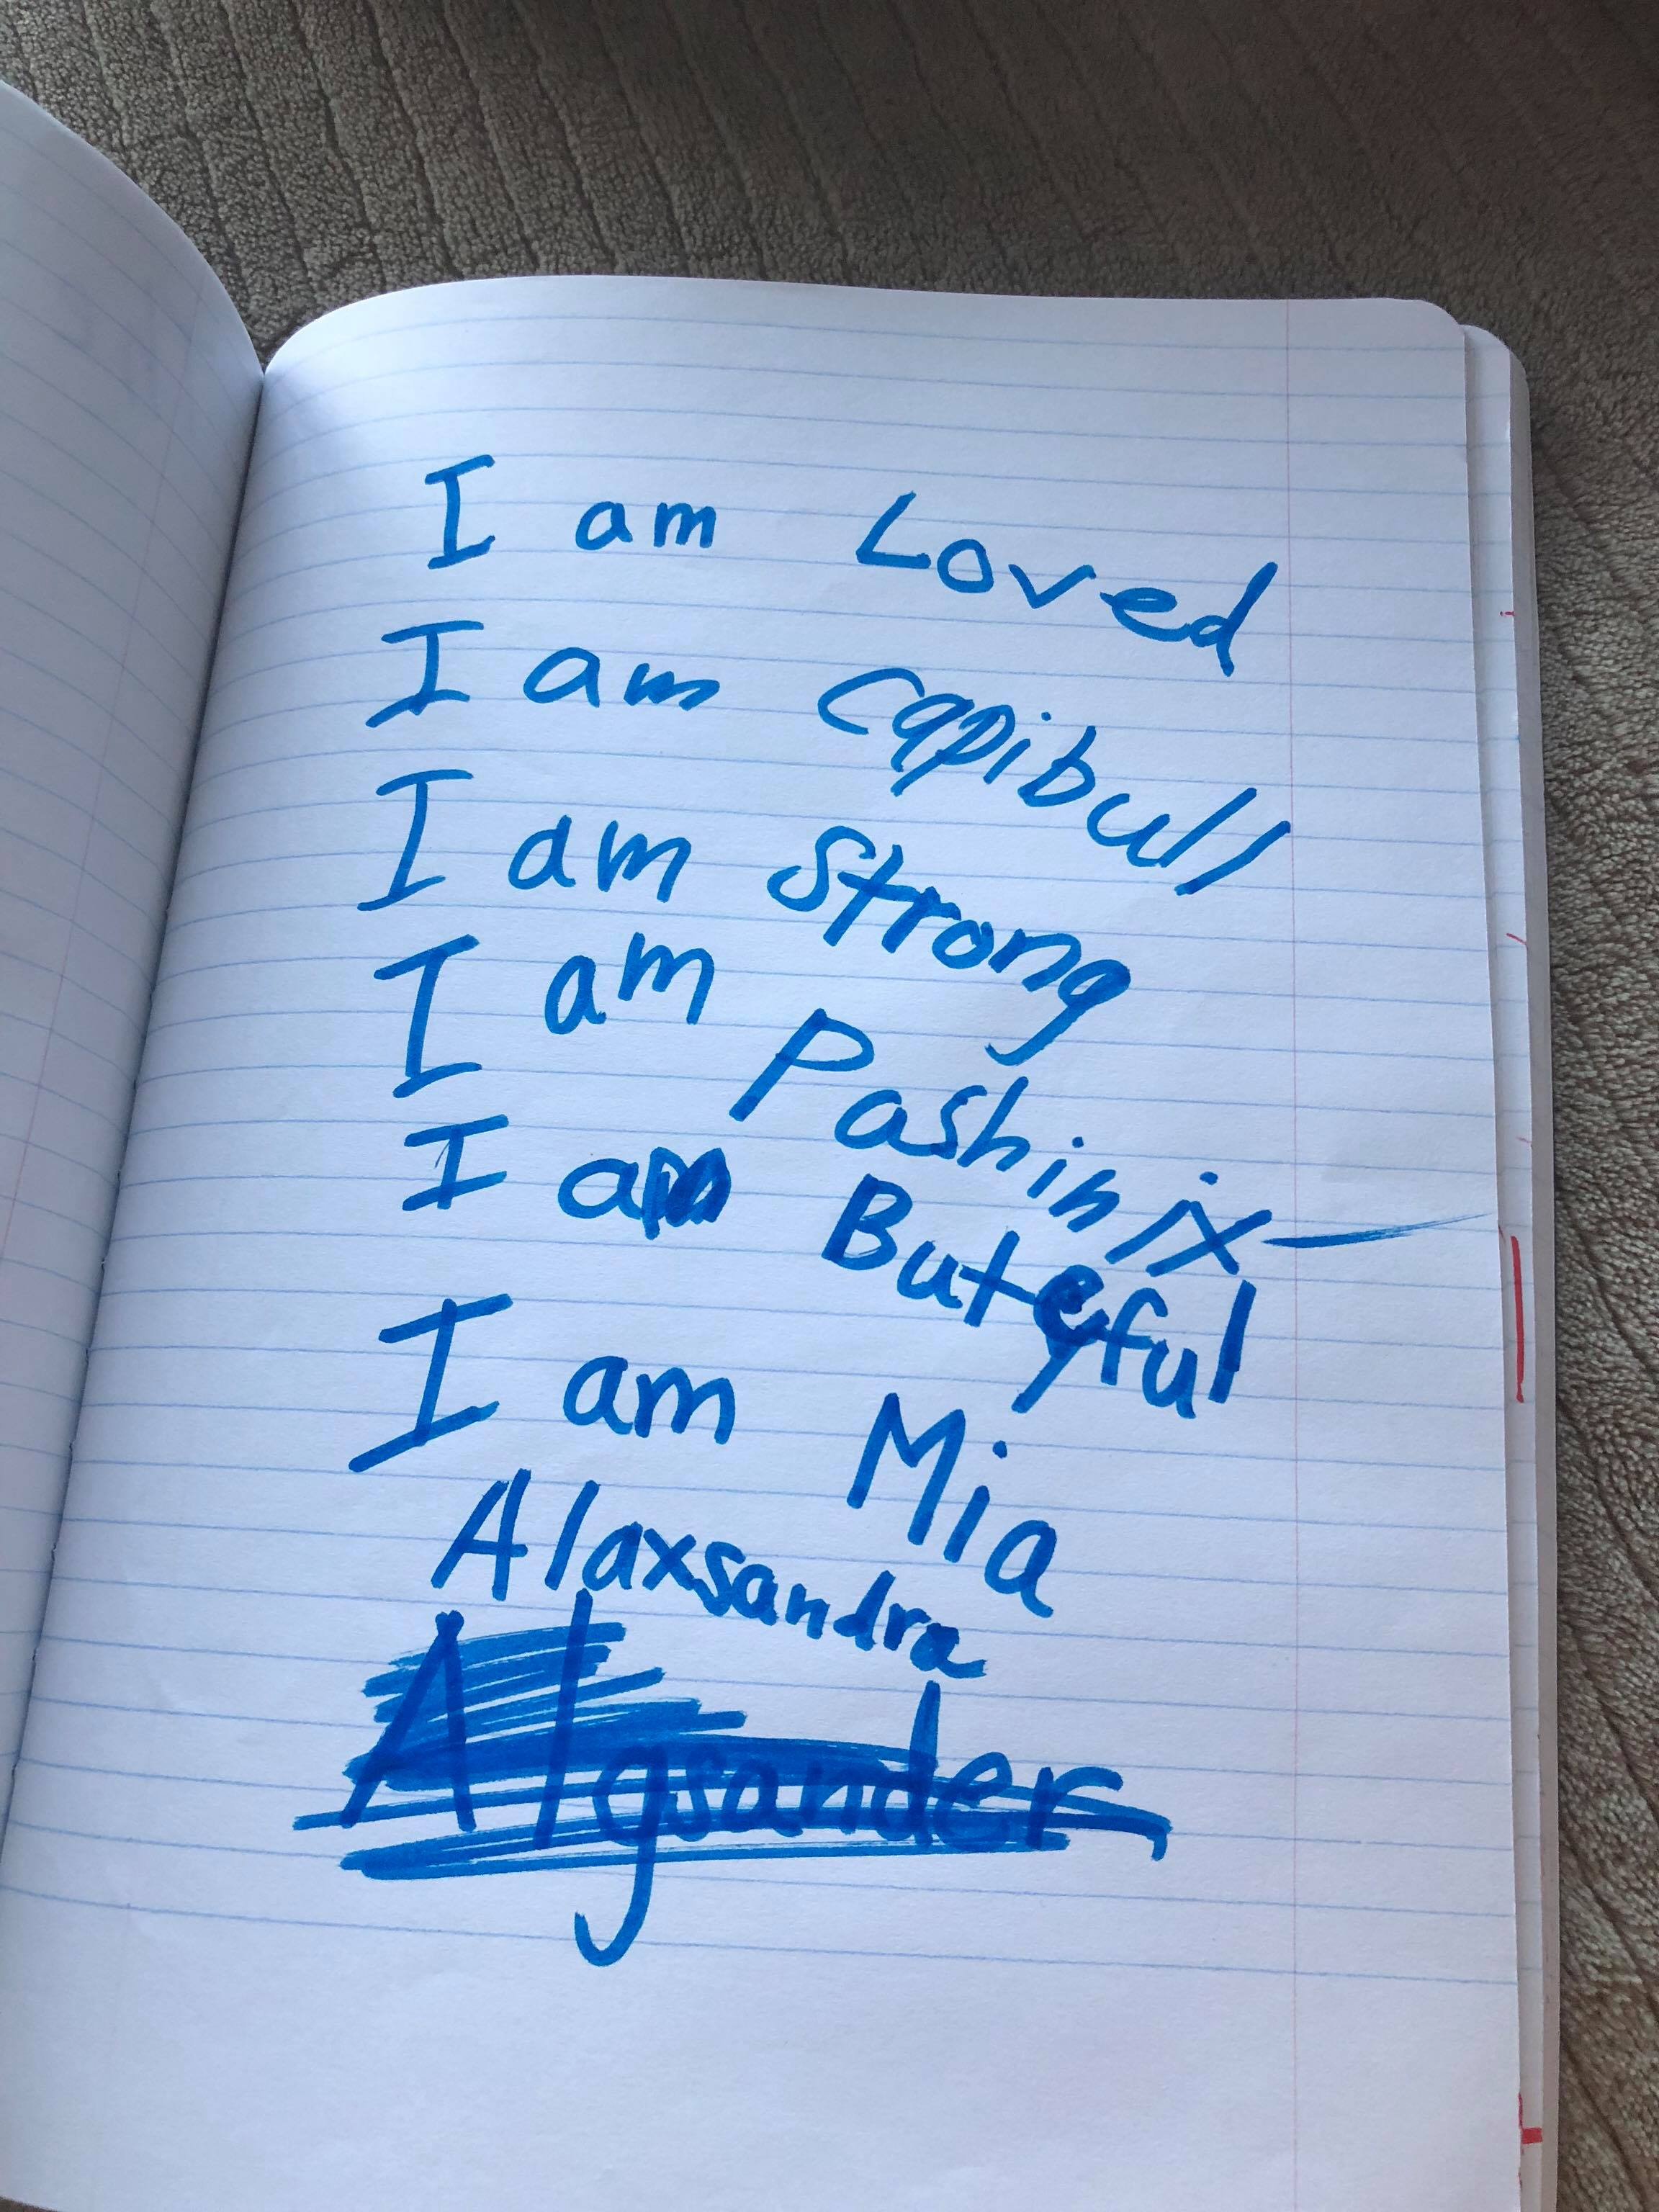 Written by my 7 yo daughter